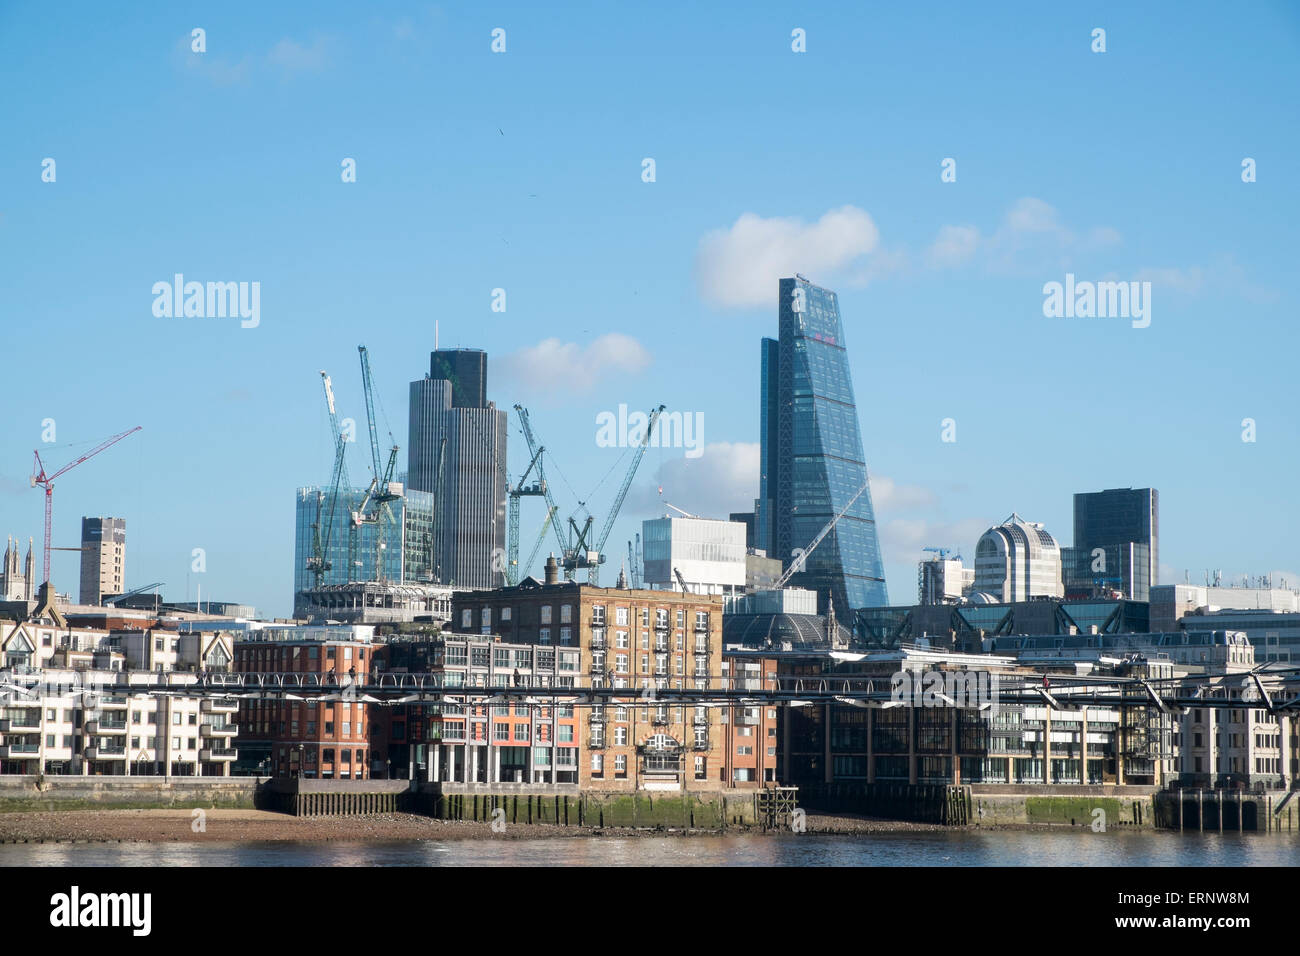 Cit yof london skyline and the Cheesegrater leadenhall building developed by British Land and Oxford properties,london - Stock Image